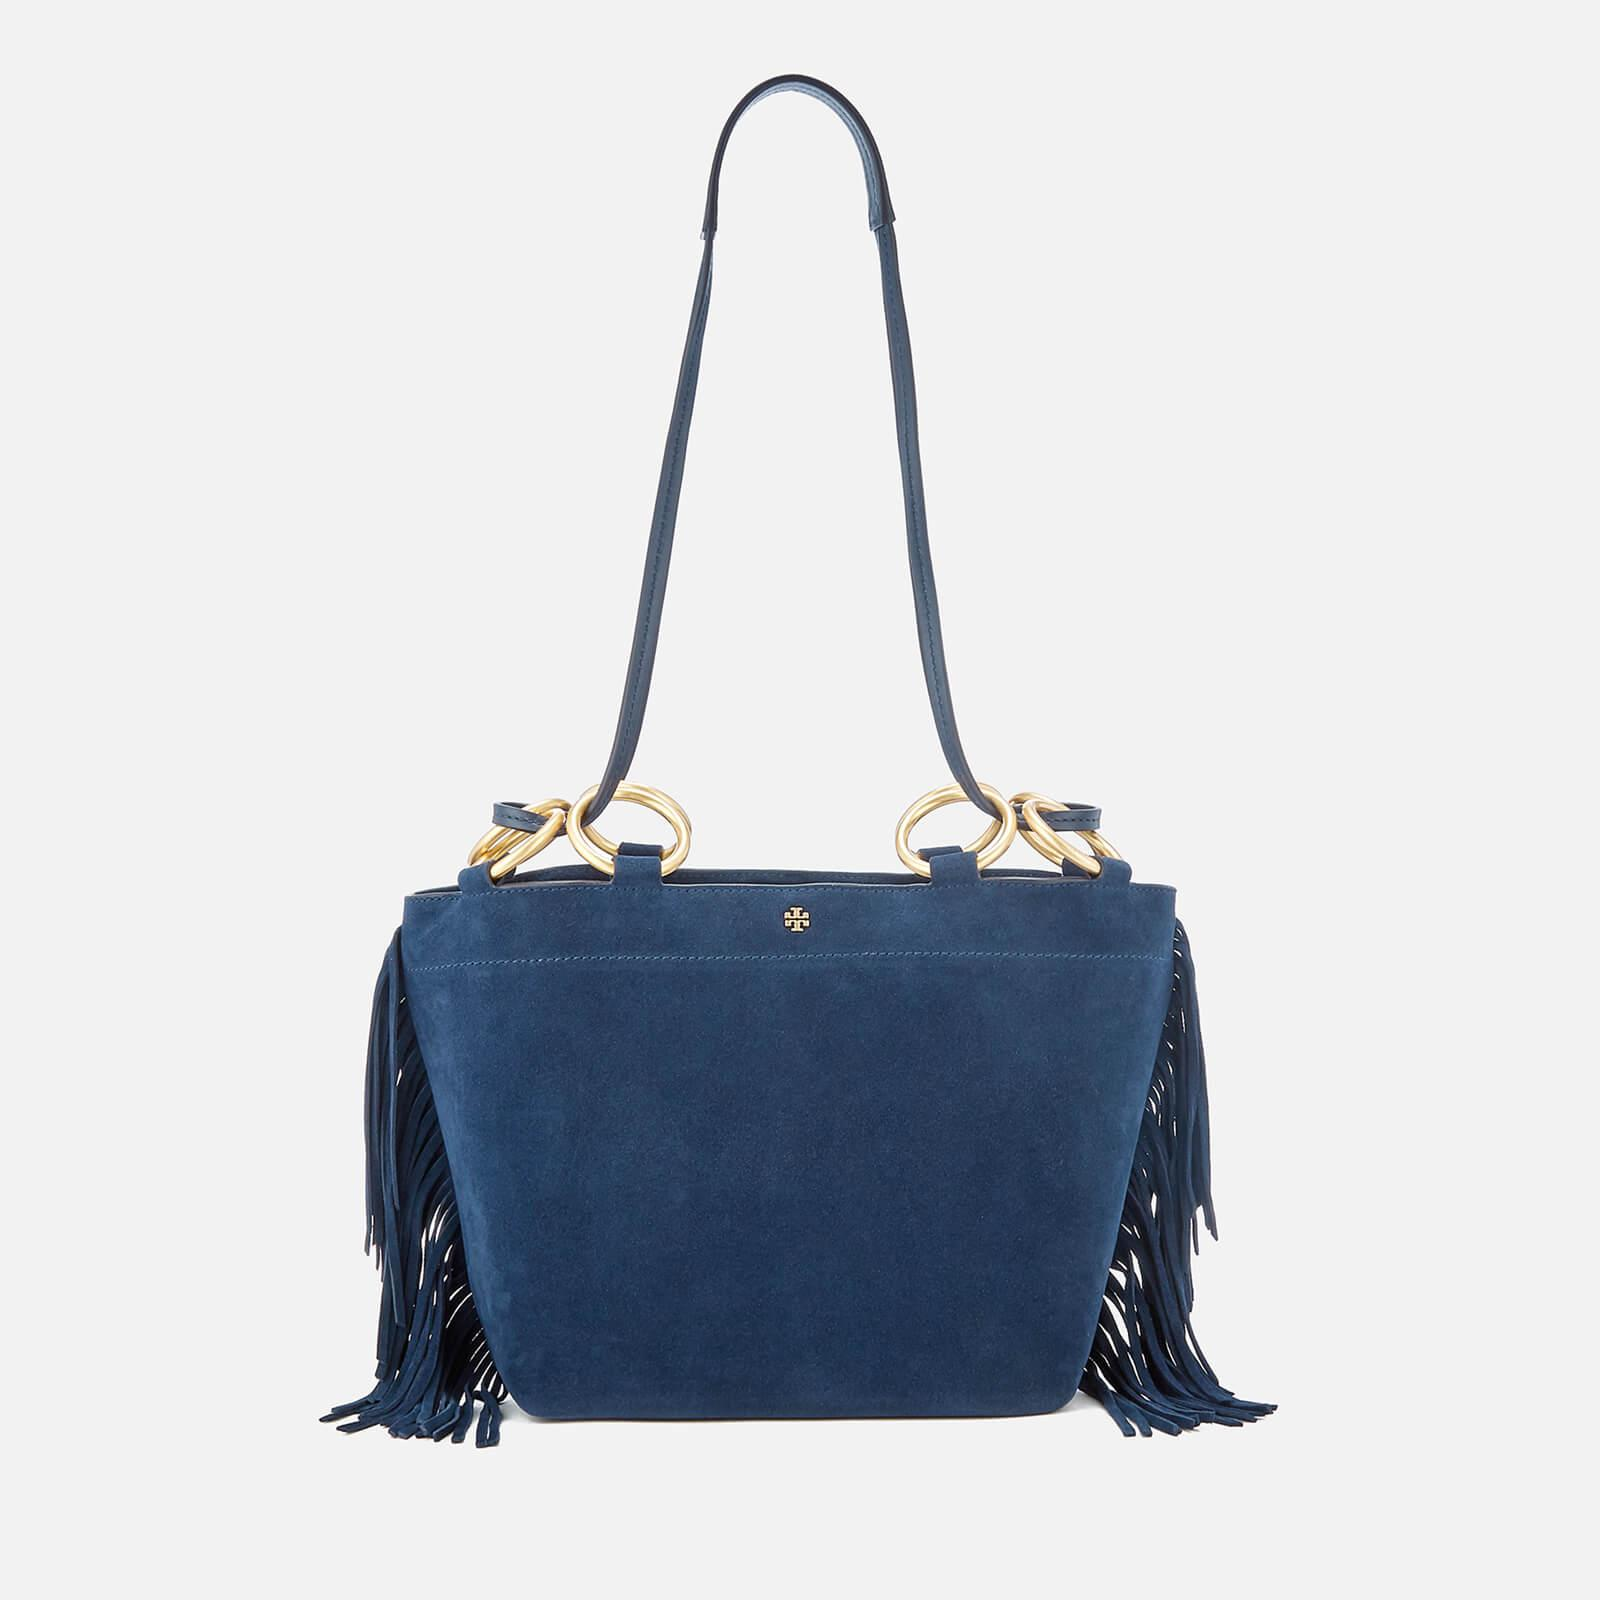 5e8116814ab Tory Burch Farrah Fringe Minik Tote Bag in Blue - Lyst